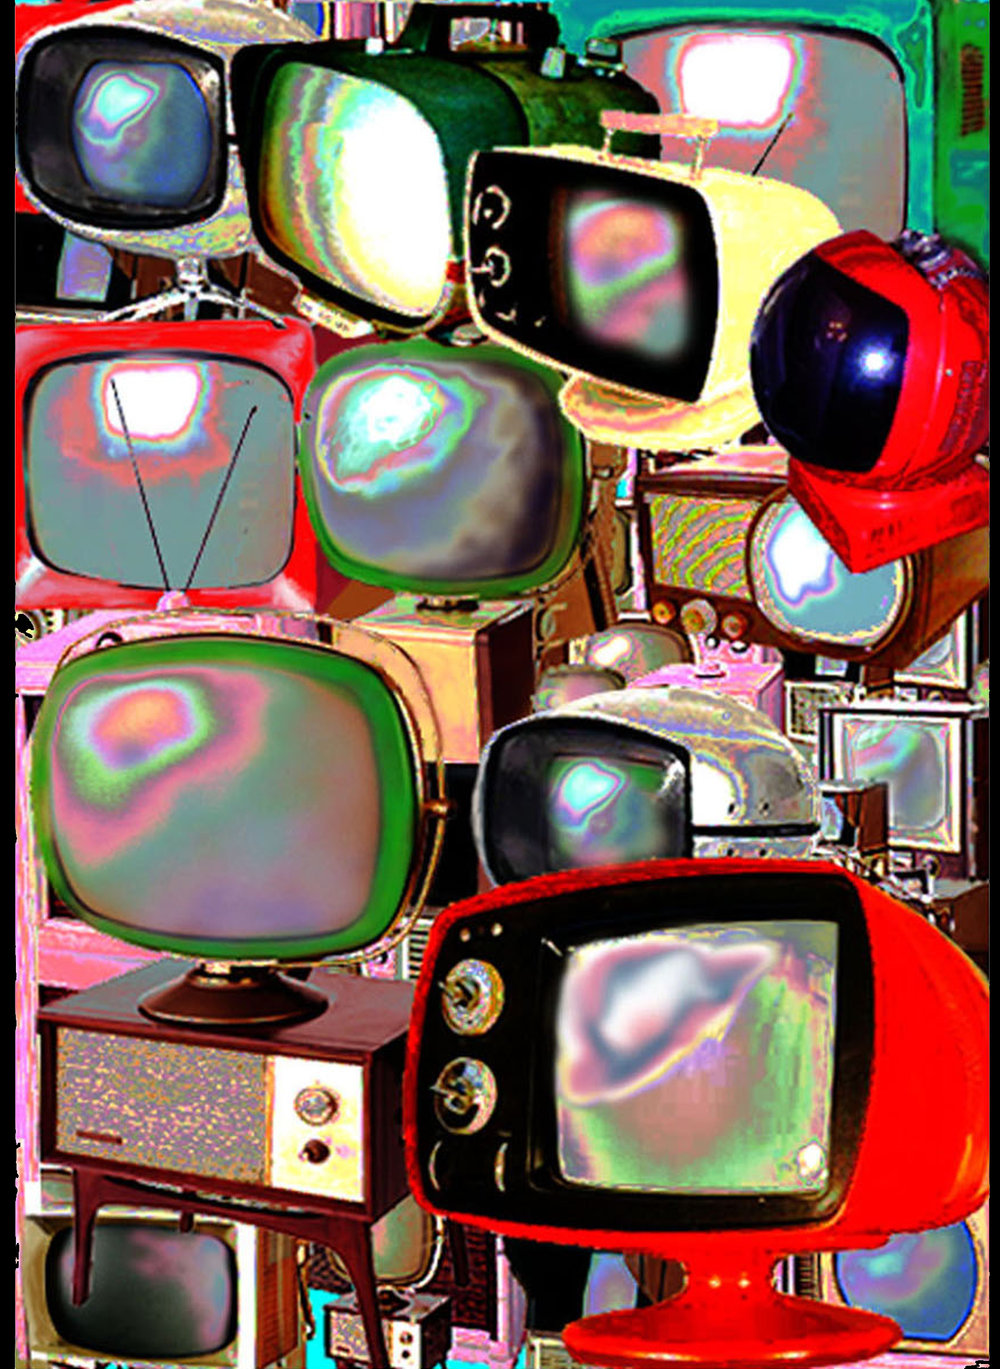 digital tvscape 2.jpg